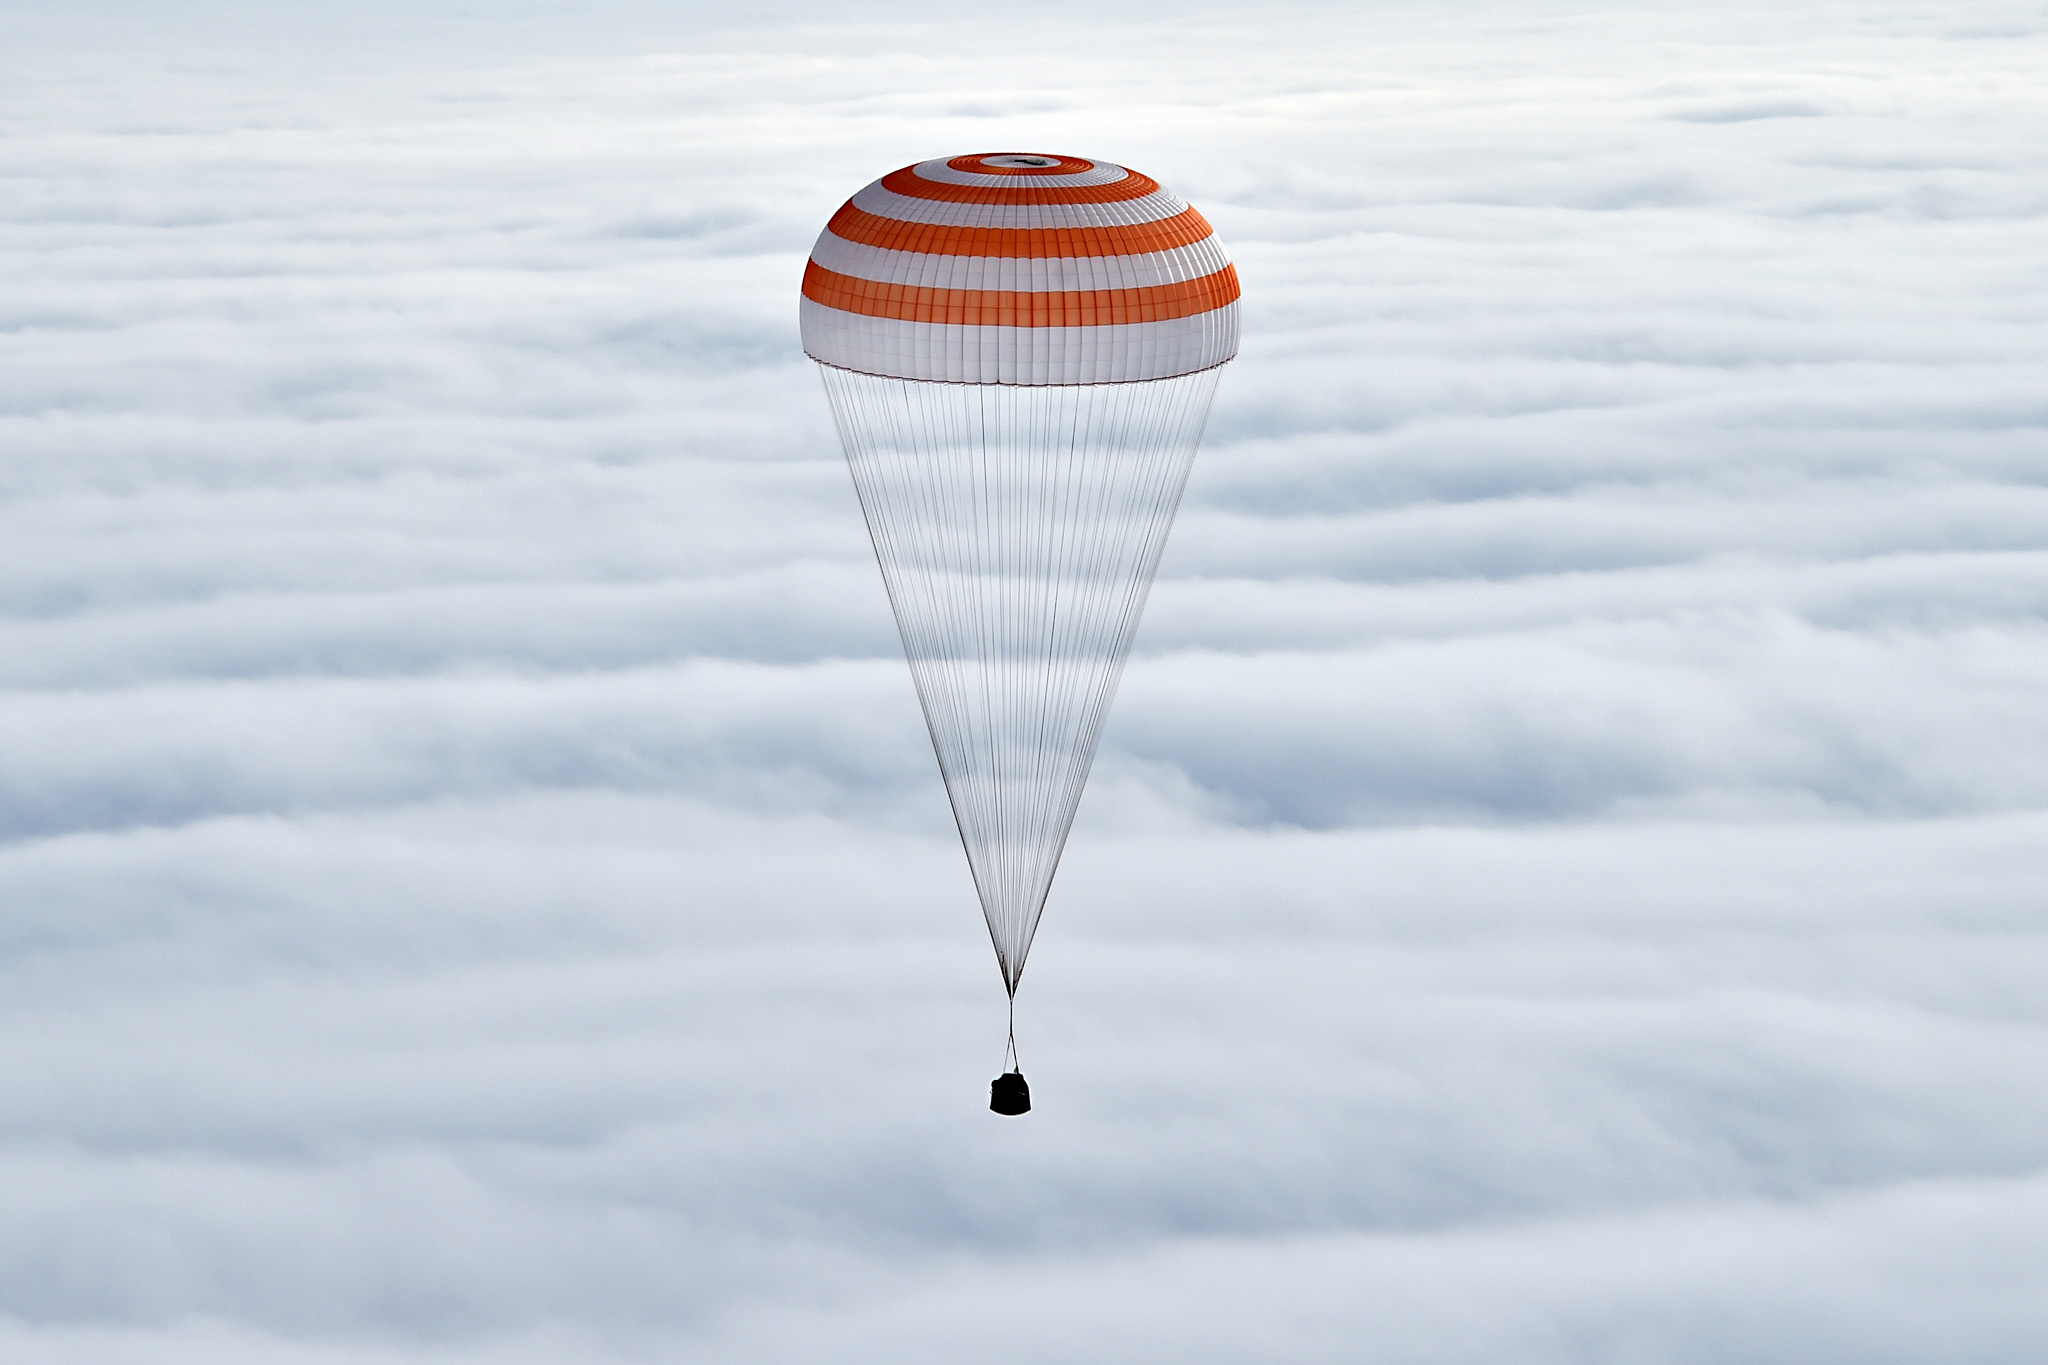 Soyuz TMA-18M space capsule carrying the International Space Station (ISS) crew members prepares to land in a remote area outside the town of Dzhezkazgan, Kazakhstan